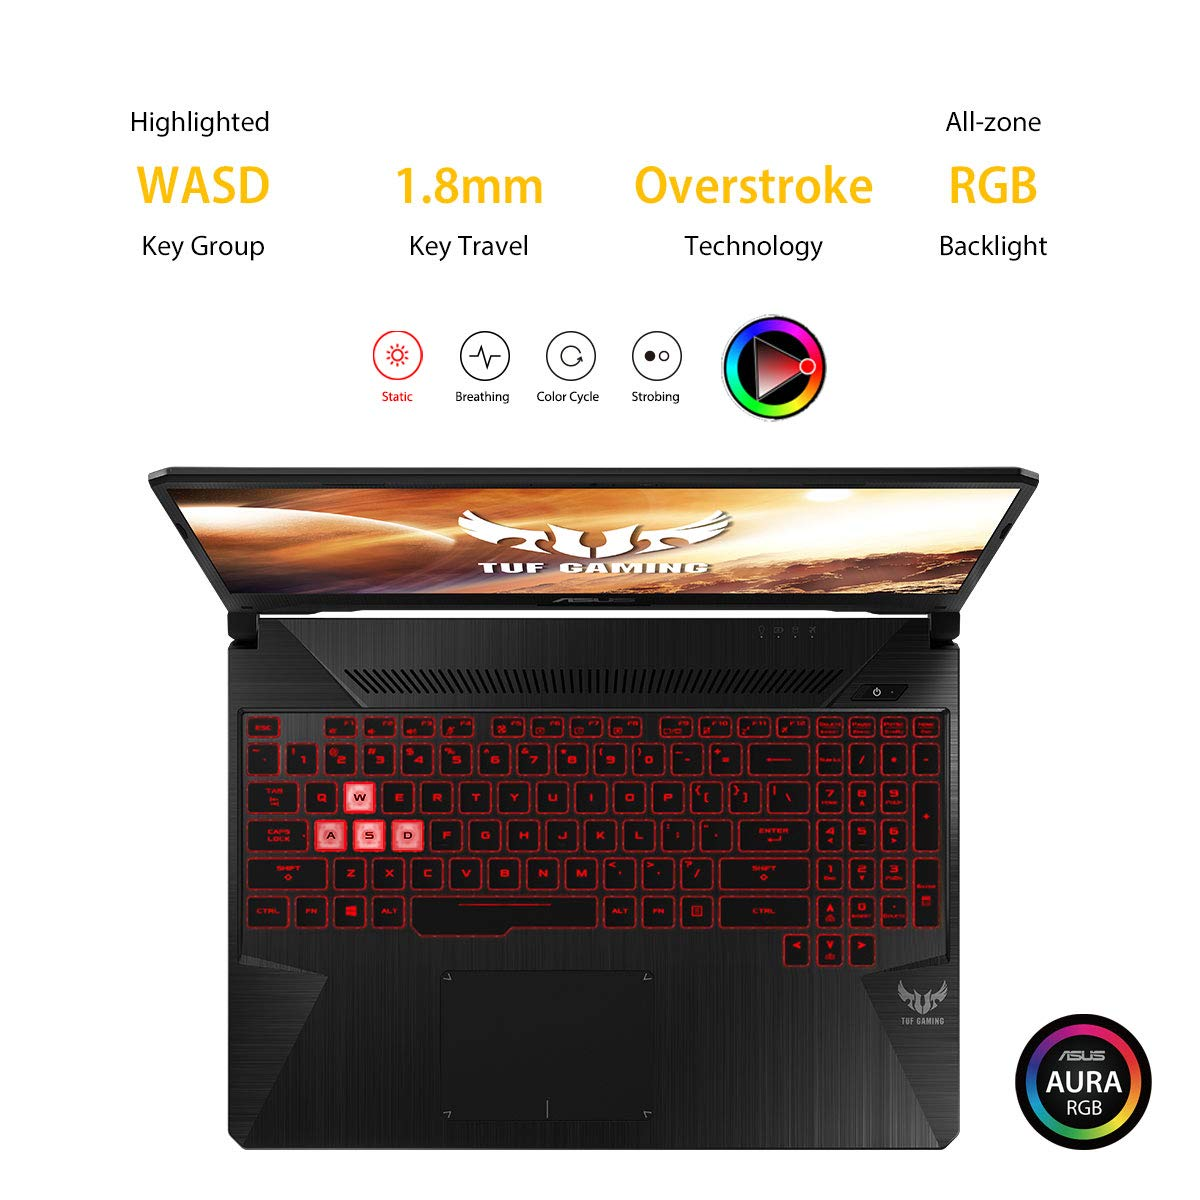 ASUS TUF Gaming FX505DT 15.6-inch FHD Laptop, Ryzen 5 3550H, GTX 1650 4GB GDDR5 Graphics (8GB RAM/1T